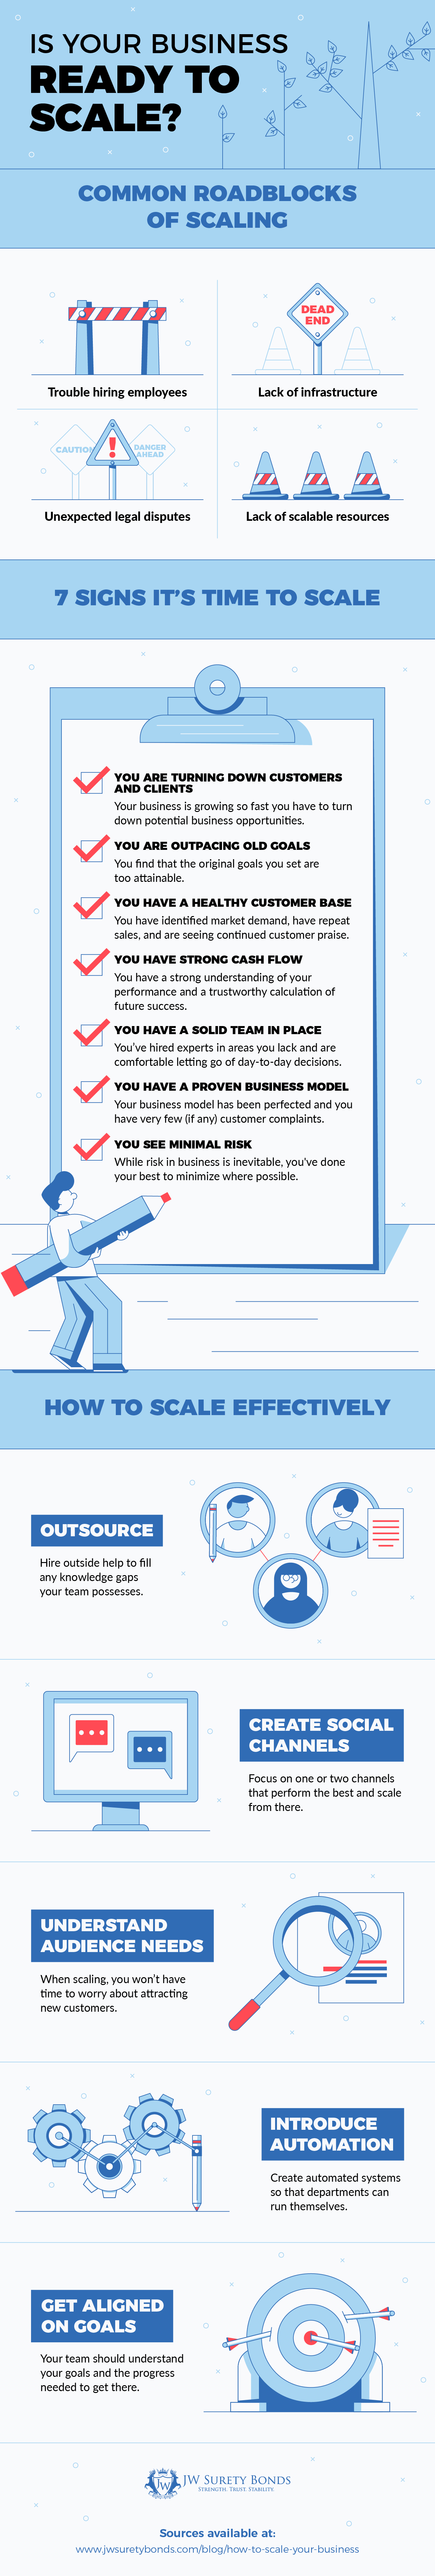 is your business ready to scale infographic